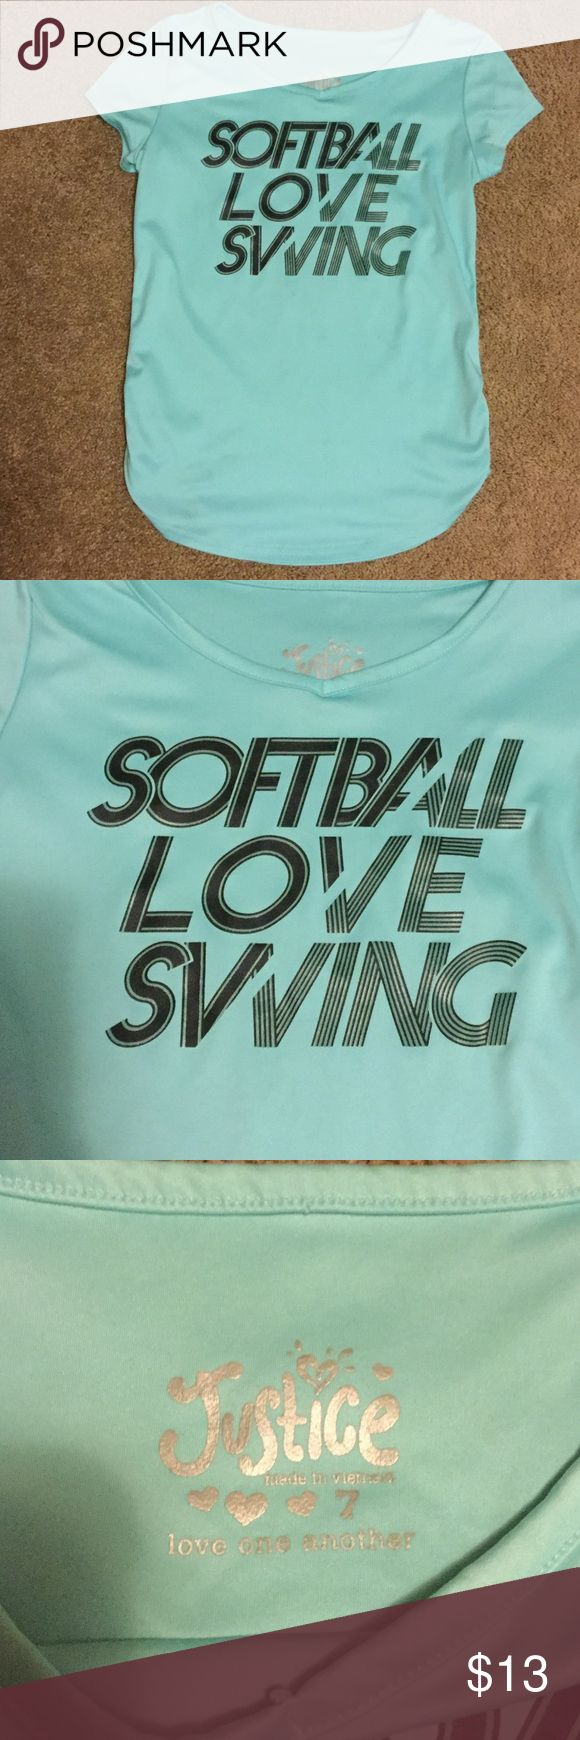 Justice Softball Love Swing Girls Size 7 Shirt Justice Softball Love Swing Girls Size 7 Short Sleeve Shirt. Purchased at justice. Tags removed but never worn. From a pet free and smoke free home. Justice Shirts & Tops Tees - Short Sleeve